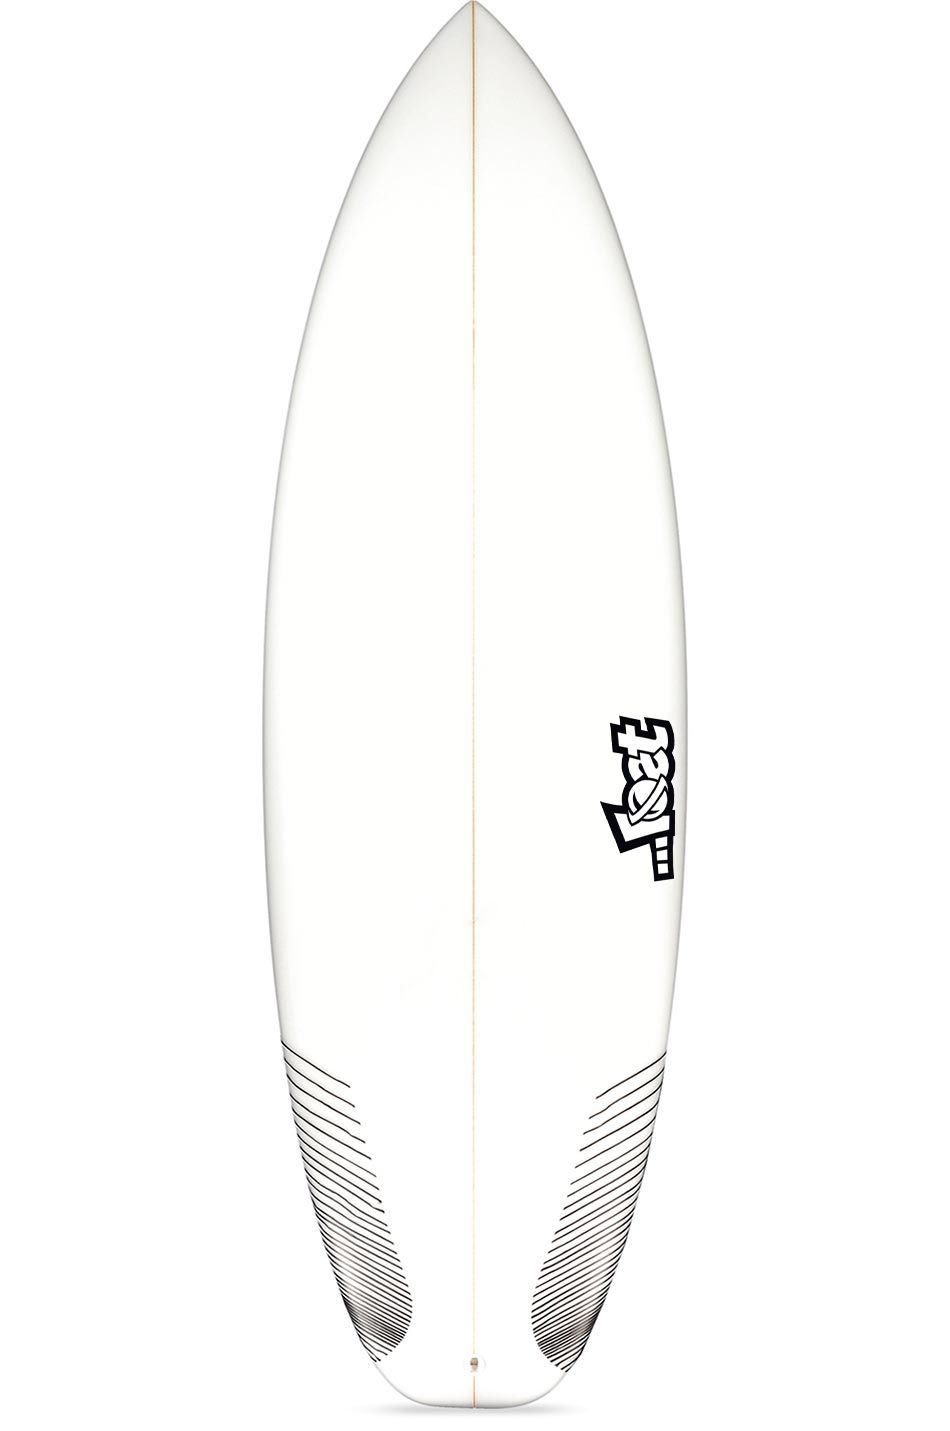 Lost Surf Board 5'9 PUDDLE JUMPER HP Squash Tail - White FCS II Multisystem 5ft9